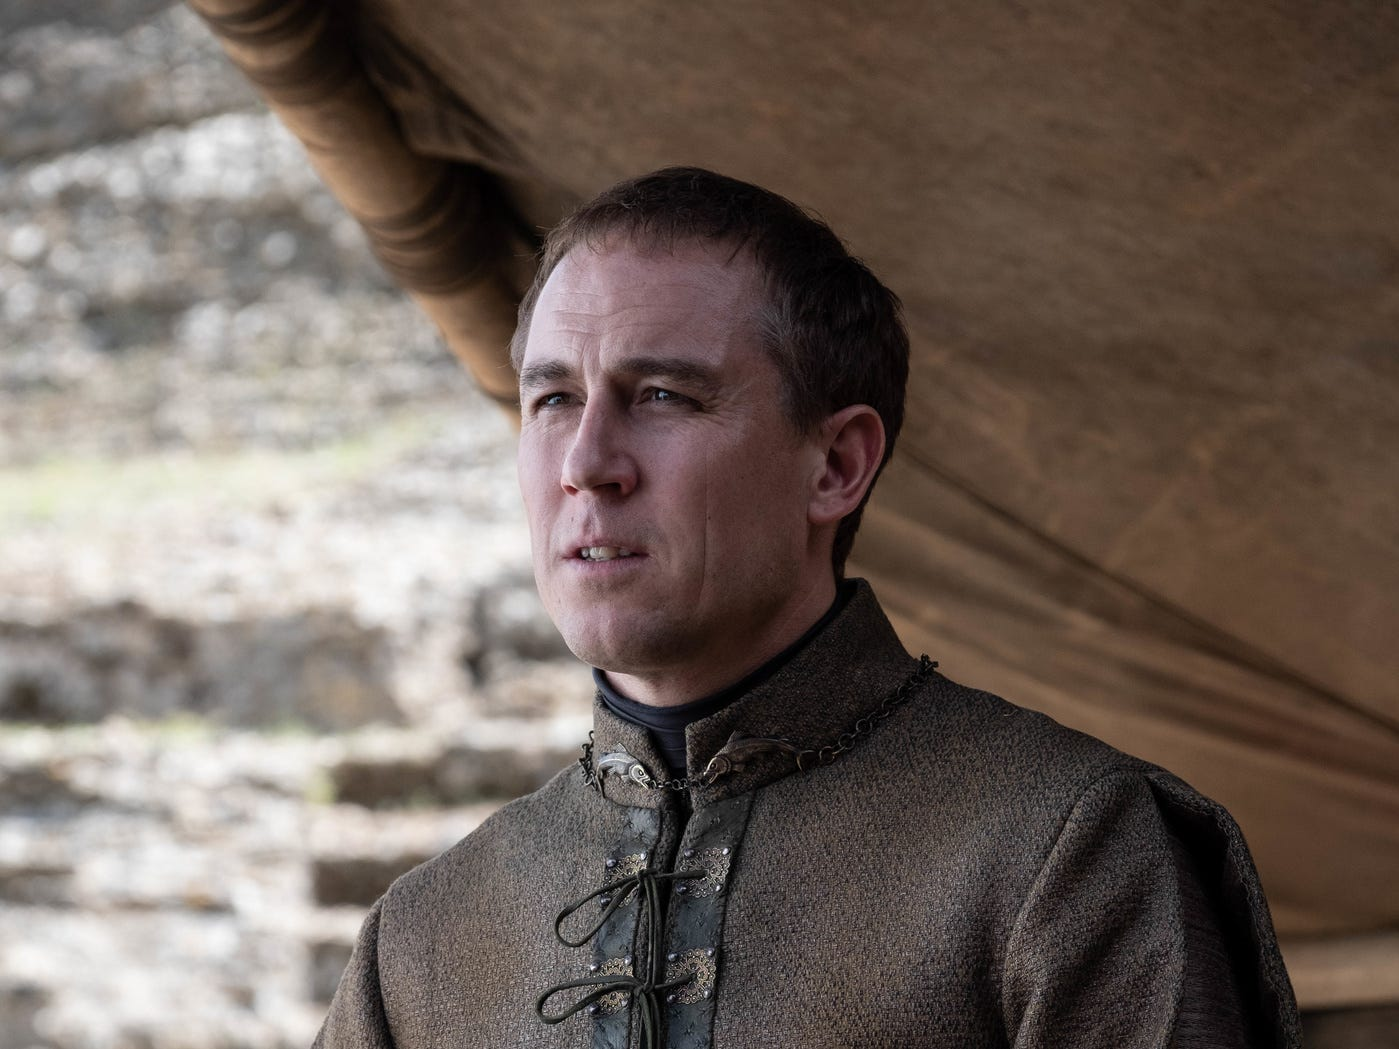 Edmure Tully (Tobias Menzies) is alive! (But no one's listening to him.)